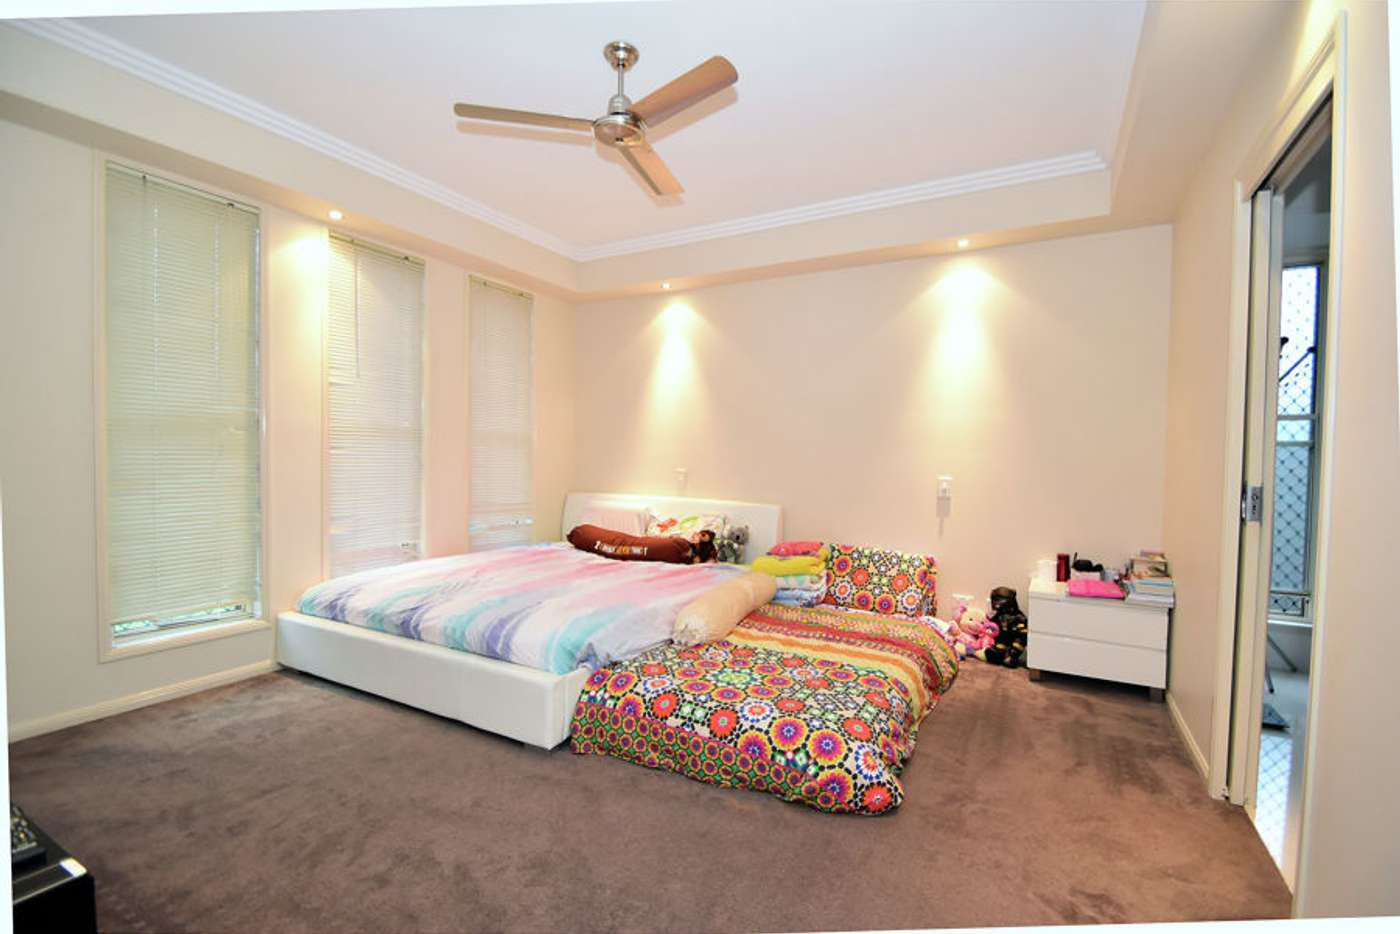 Seventh view of Homely house listing, 15 Bowers street, Eight Mile Plains QLD 4113